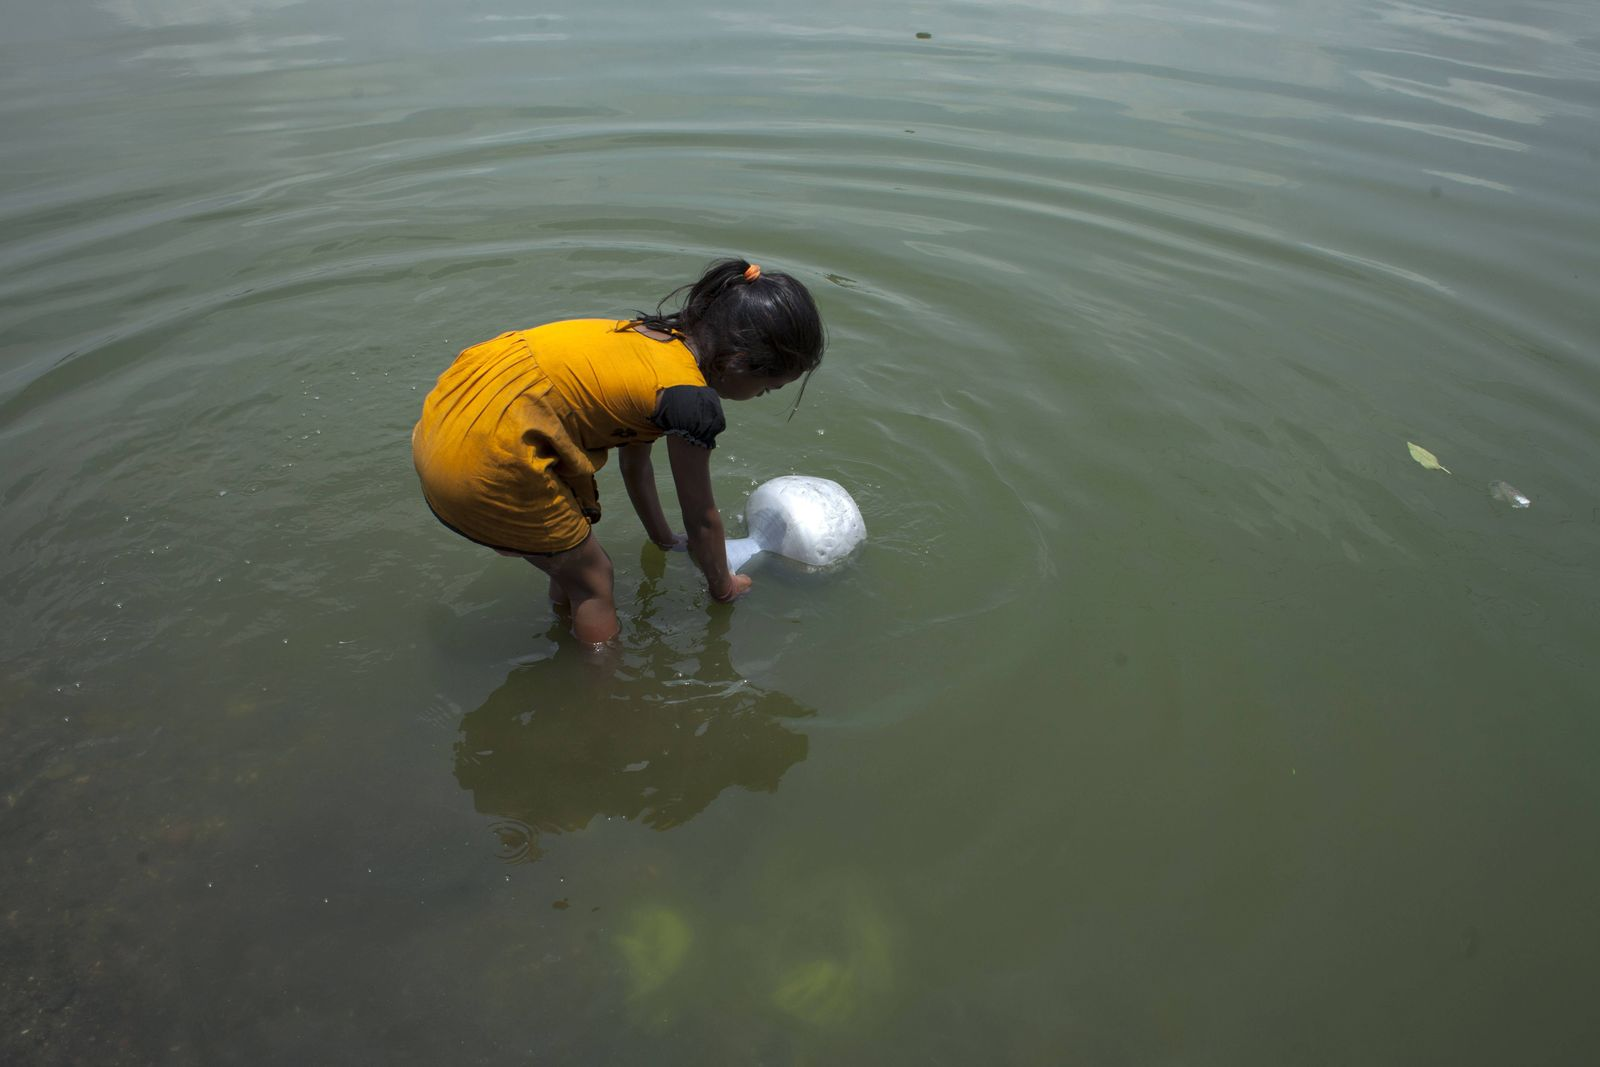 A slum child collect water from a pond for their family needs near Dhaka Daily Life Bangladesh PUB